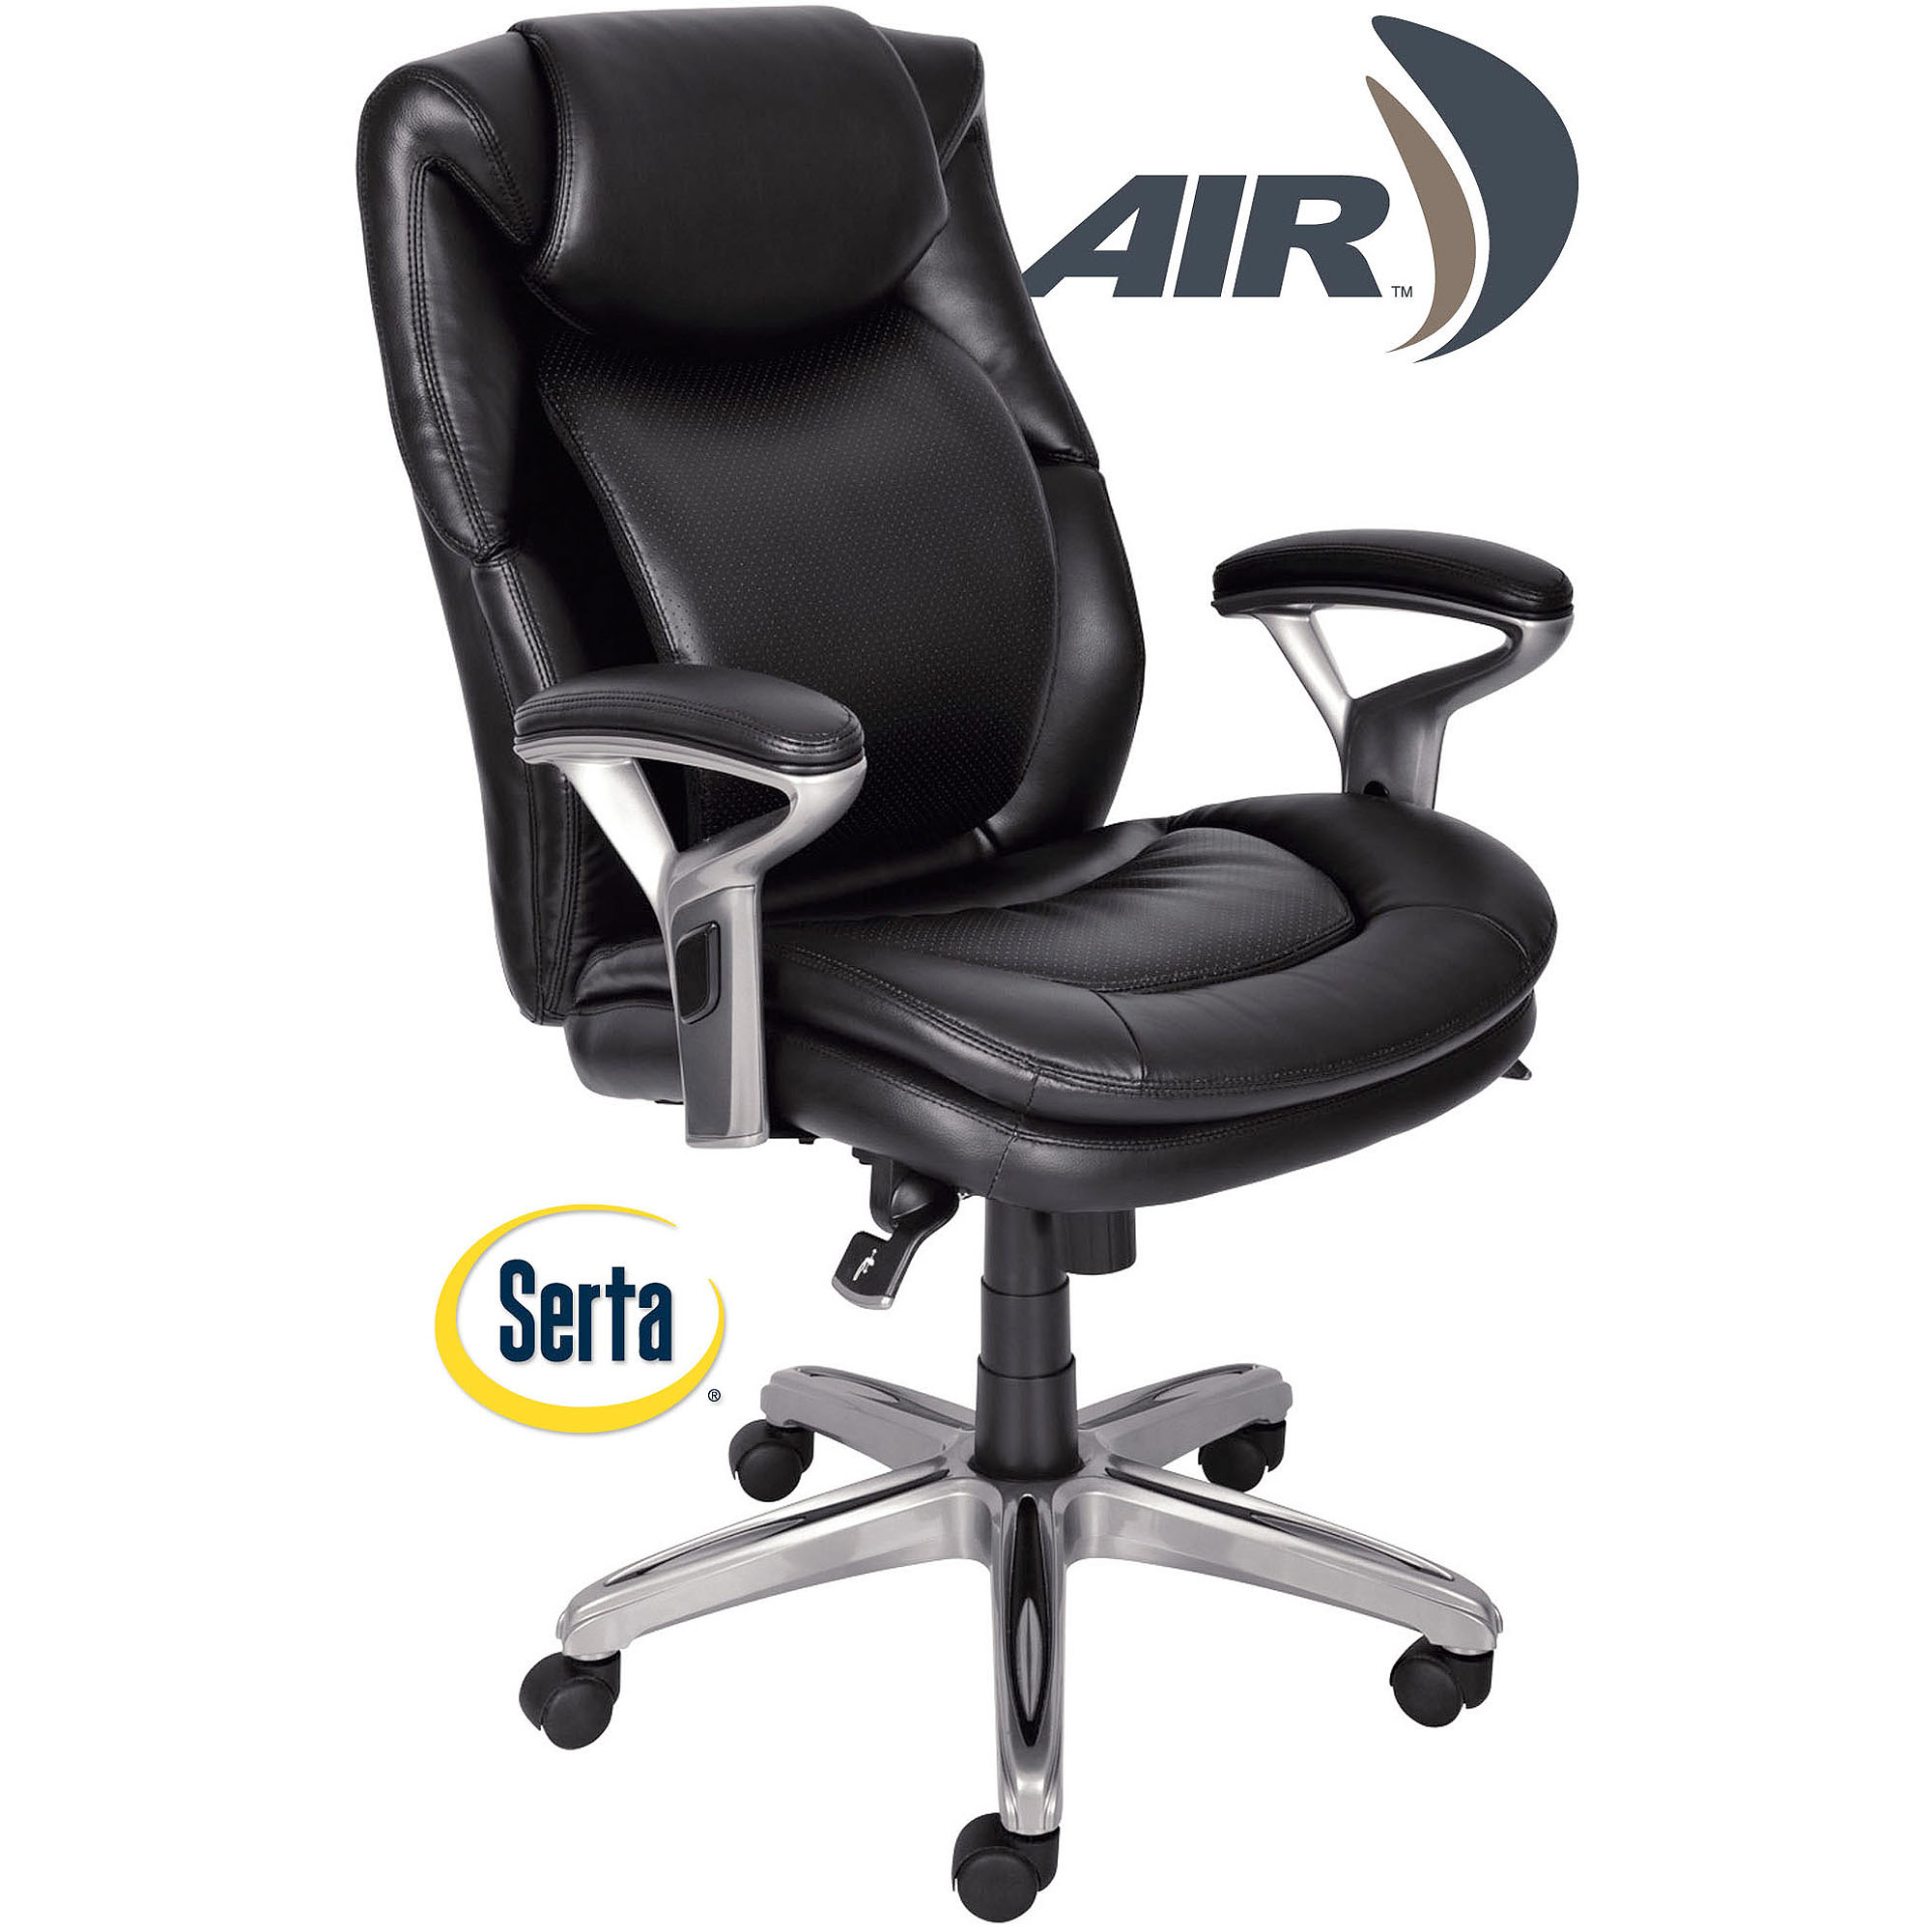 Serta AIR Health and Wellness Mid-Back Office Chair Bonded Leather, Smooth Black